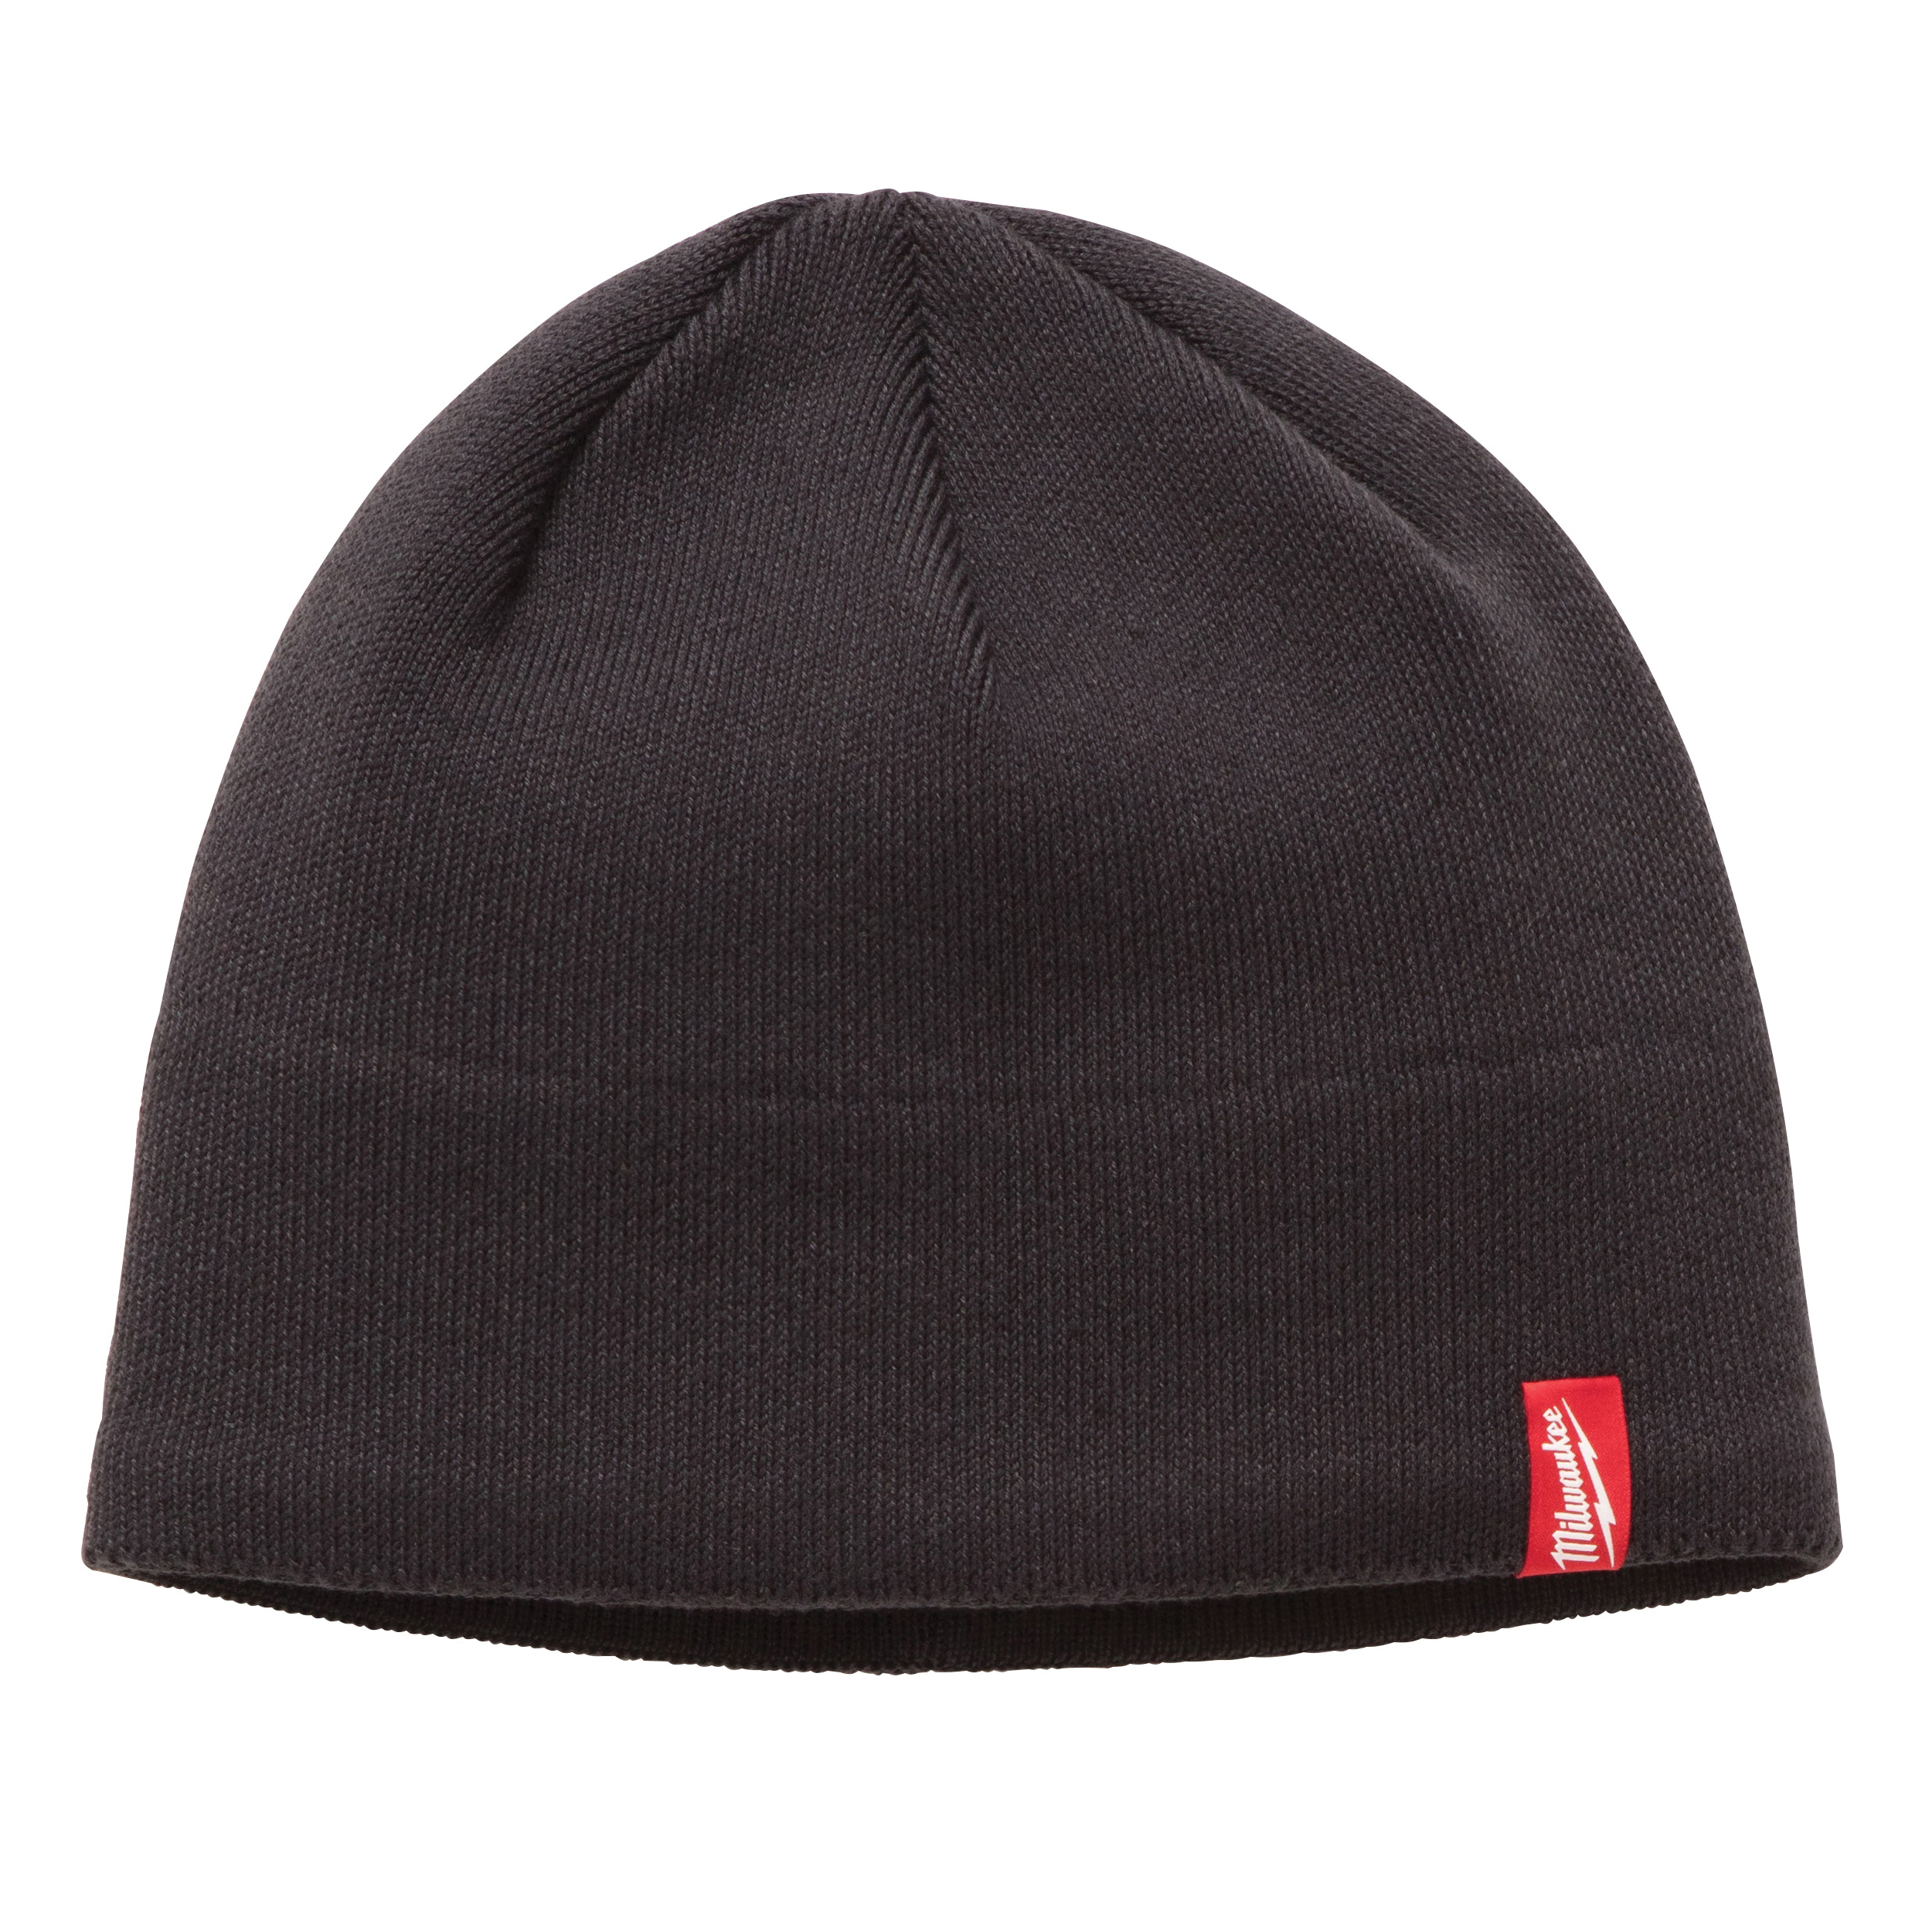 Milwaukee® 502G Insulated Wind/Water-Resistant Knit Hat Fleece Lined Knit Hat, Universal, Gray, Fleece Lined Polyester, Pull Over Closure